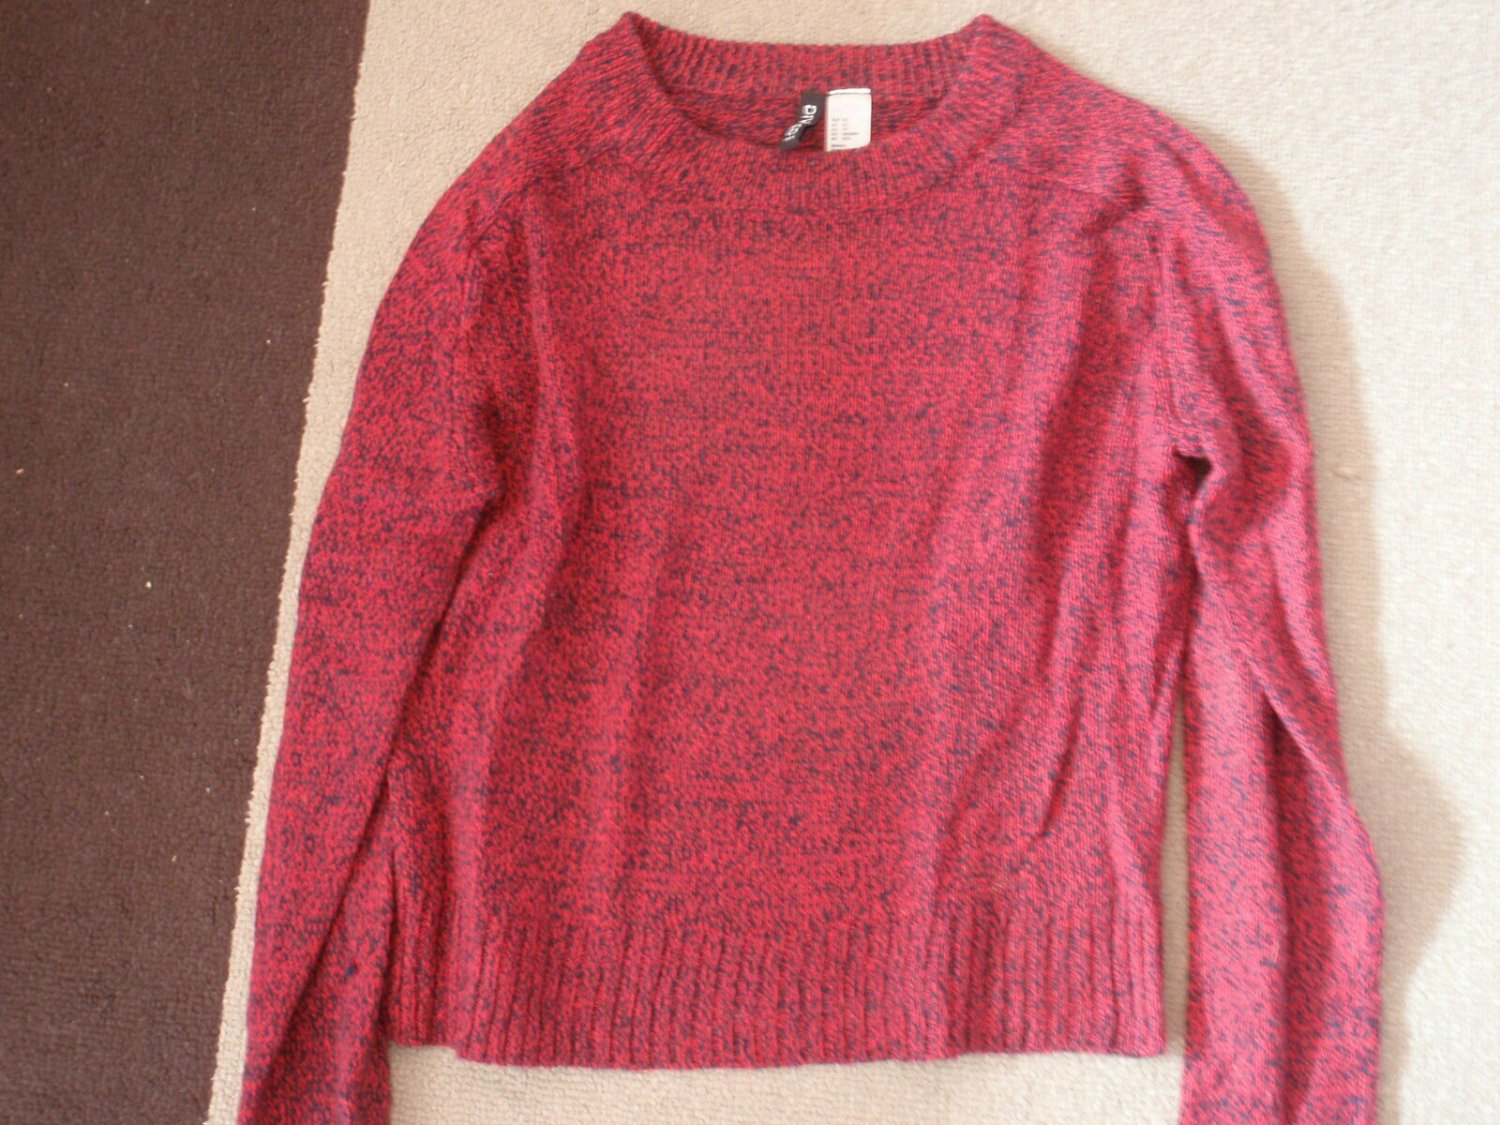 WOMENS SWEATER PULL OVER H&M Maroon and Black  SIZE XS